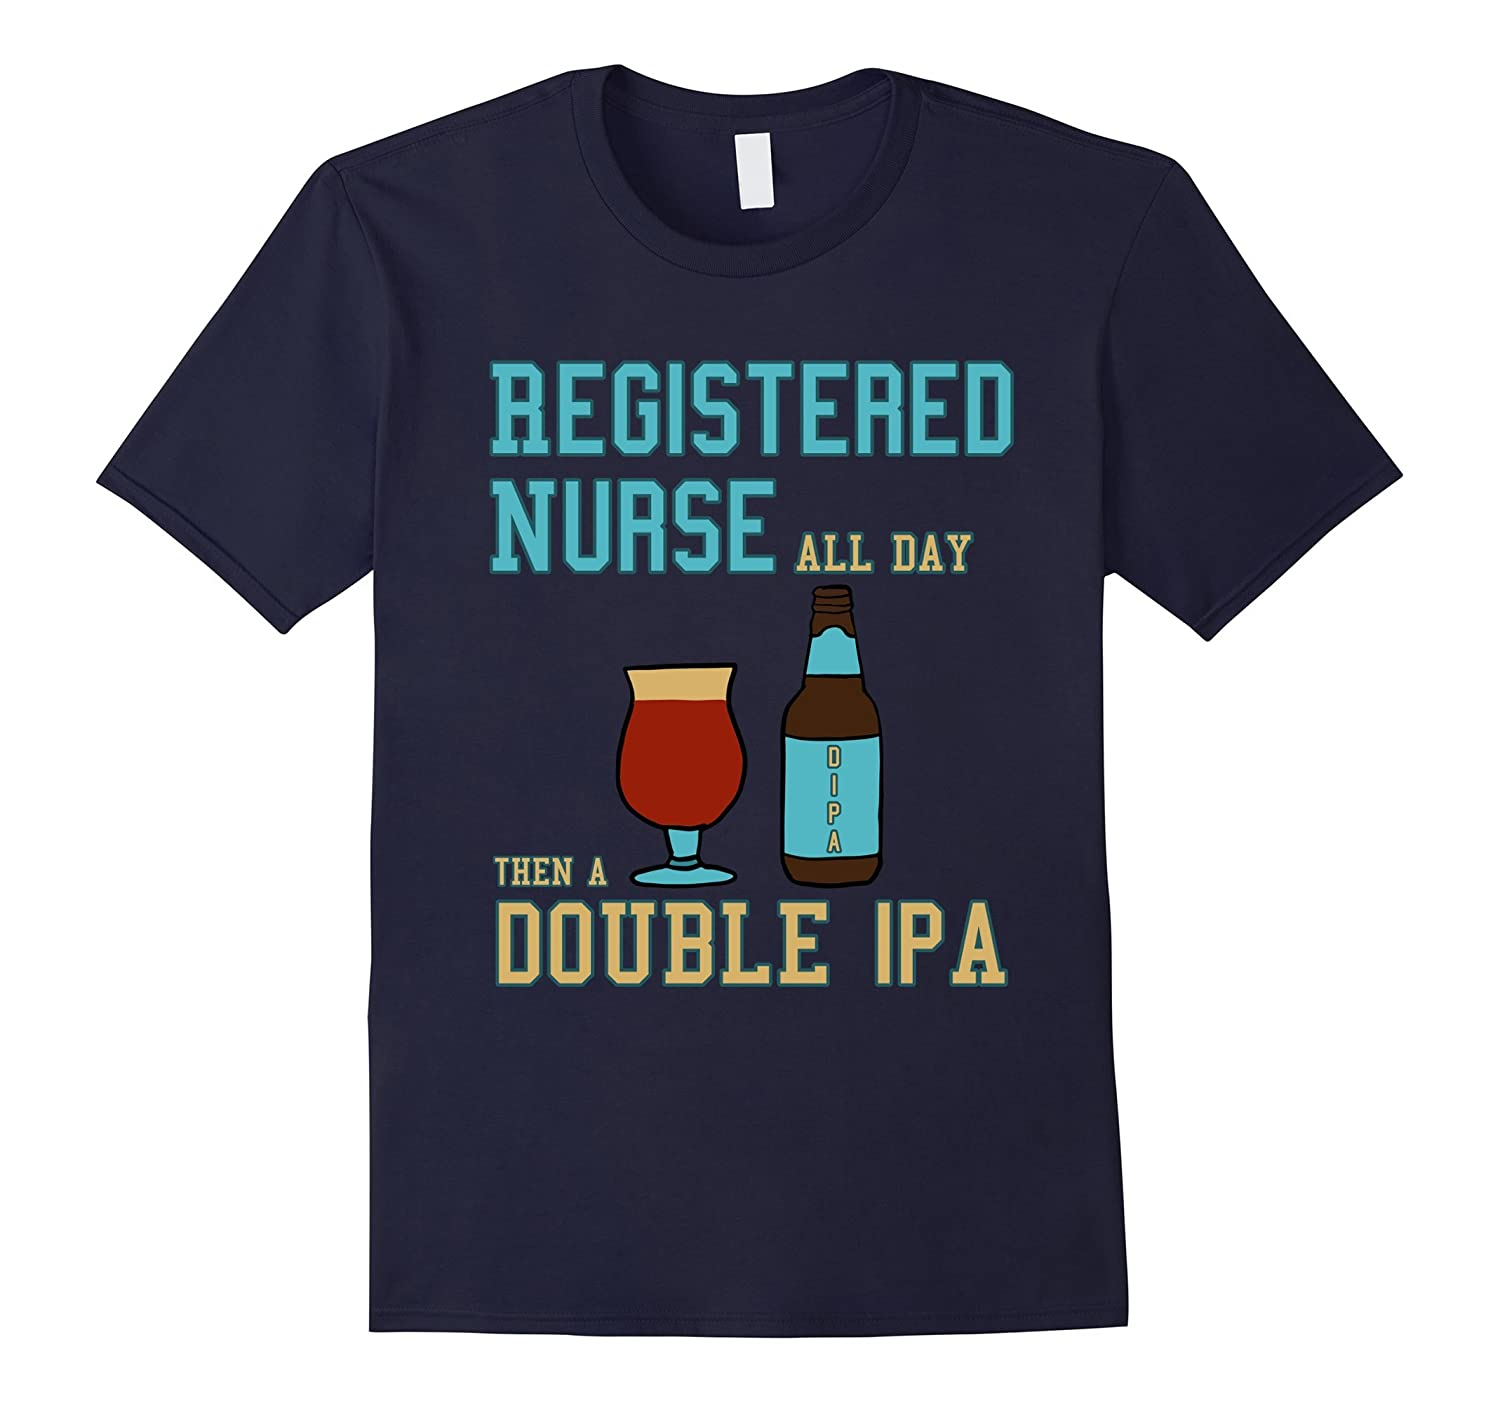 Craft Beer Gifts for Nurses- Funny Double IPA shirt